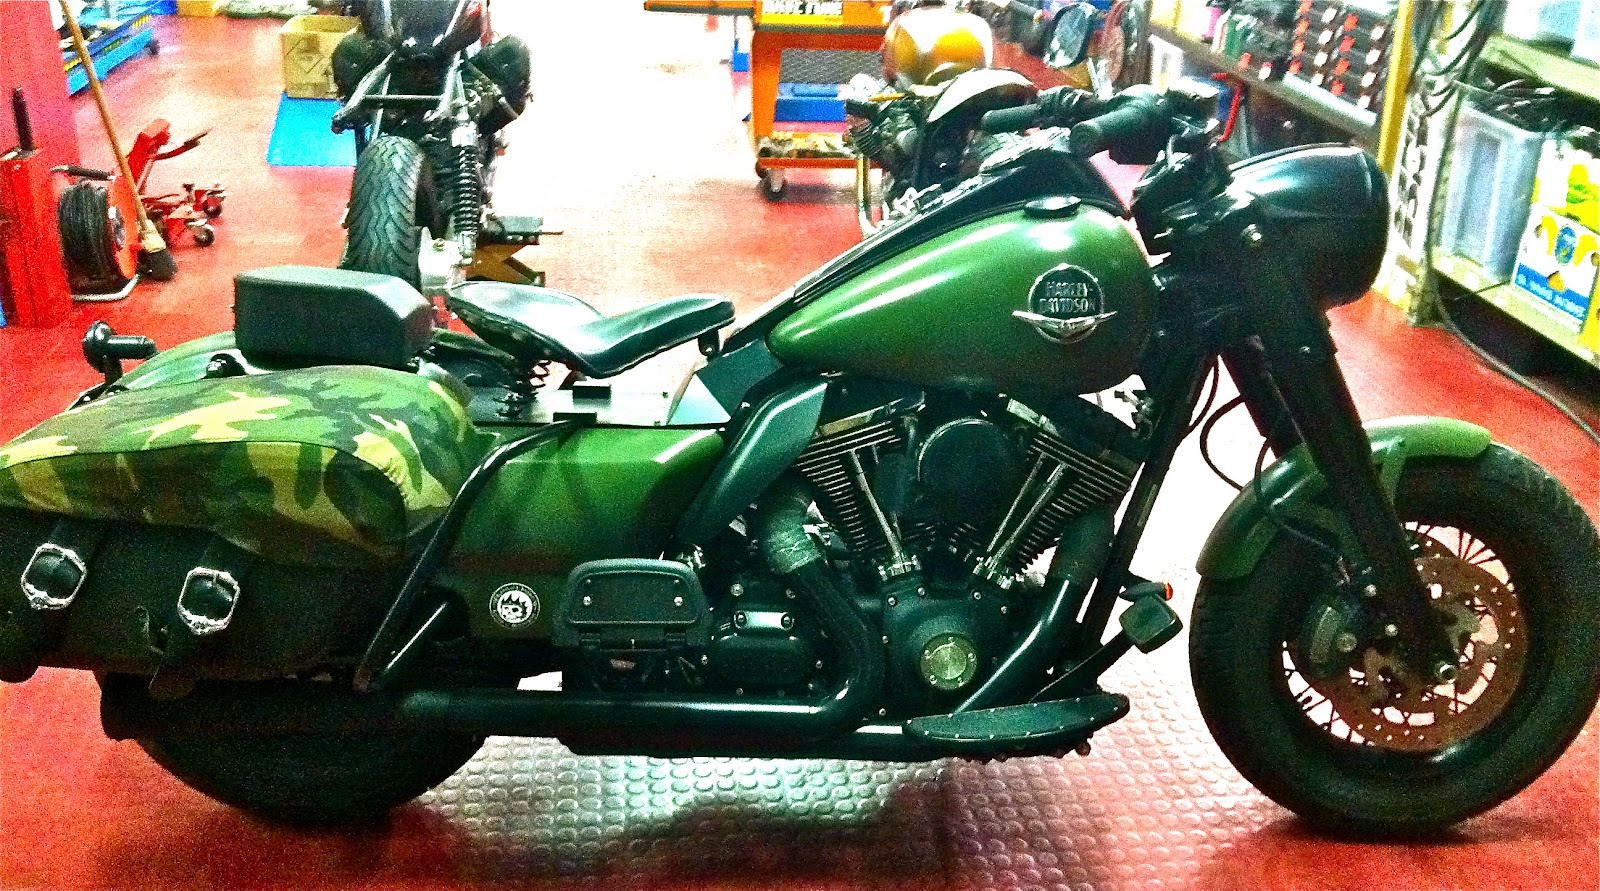 Road King Bobber http://radikalchopper.blogspot.com/2012/03/road-king.html